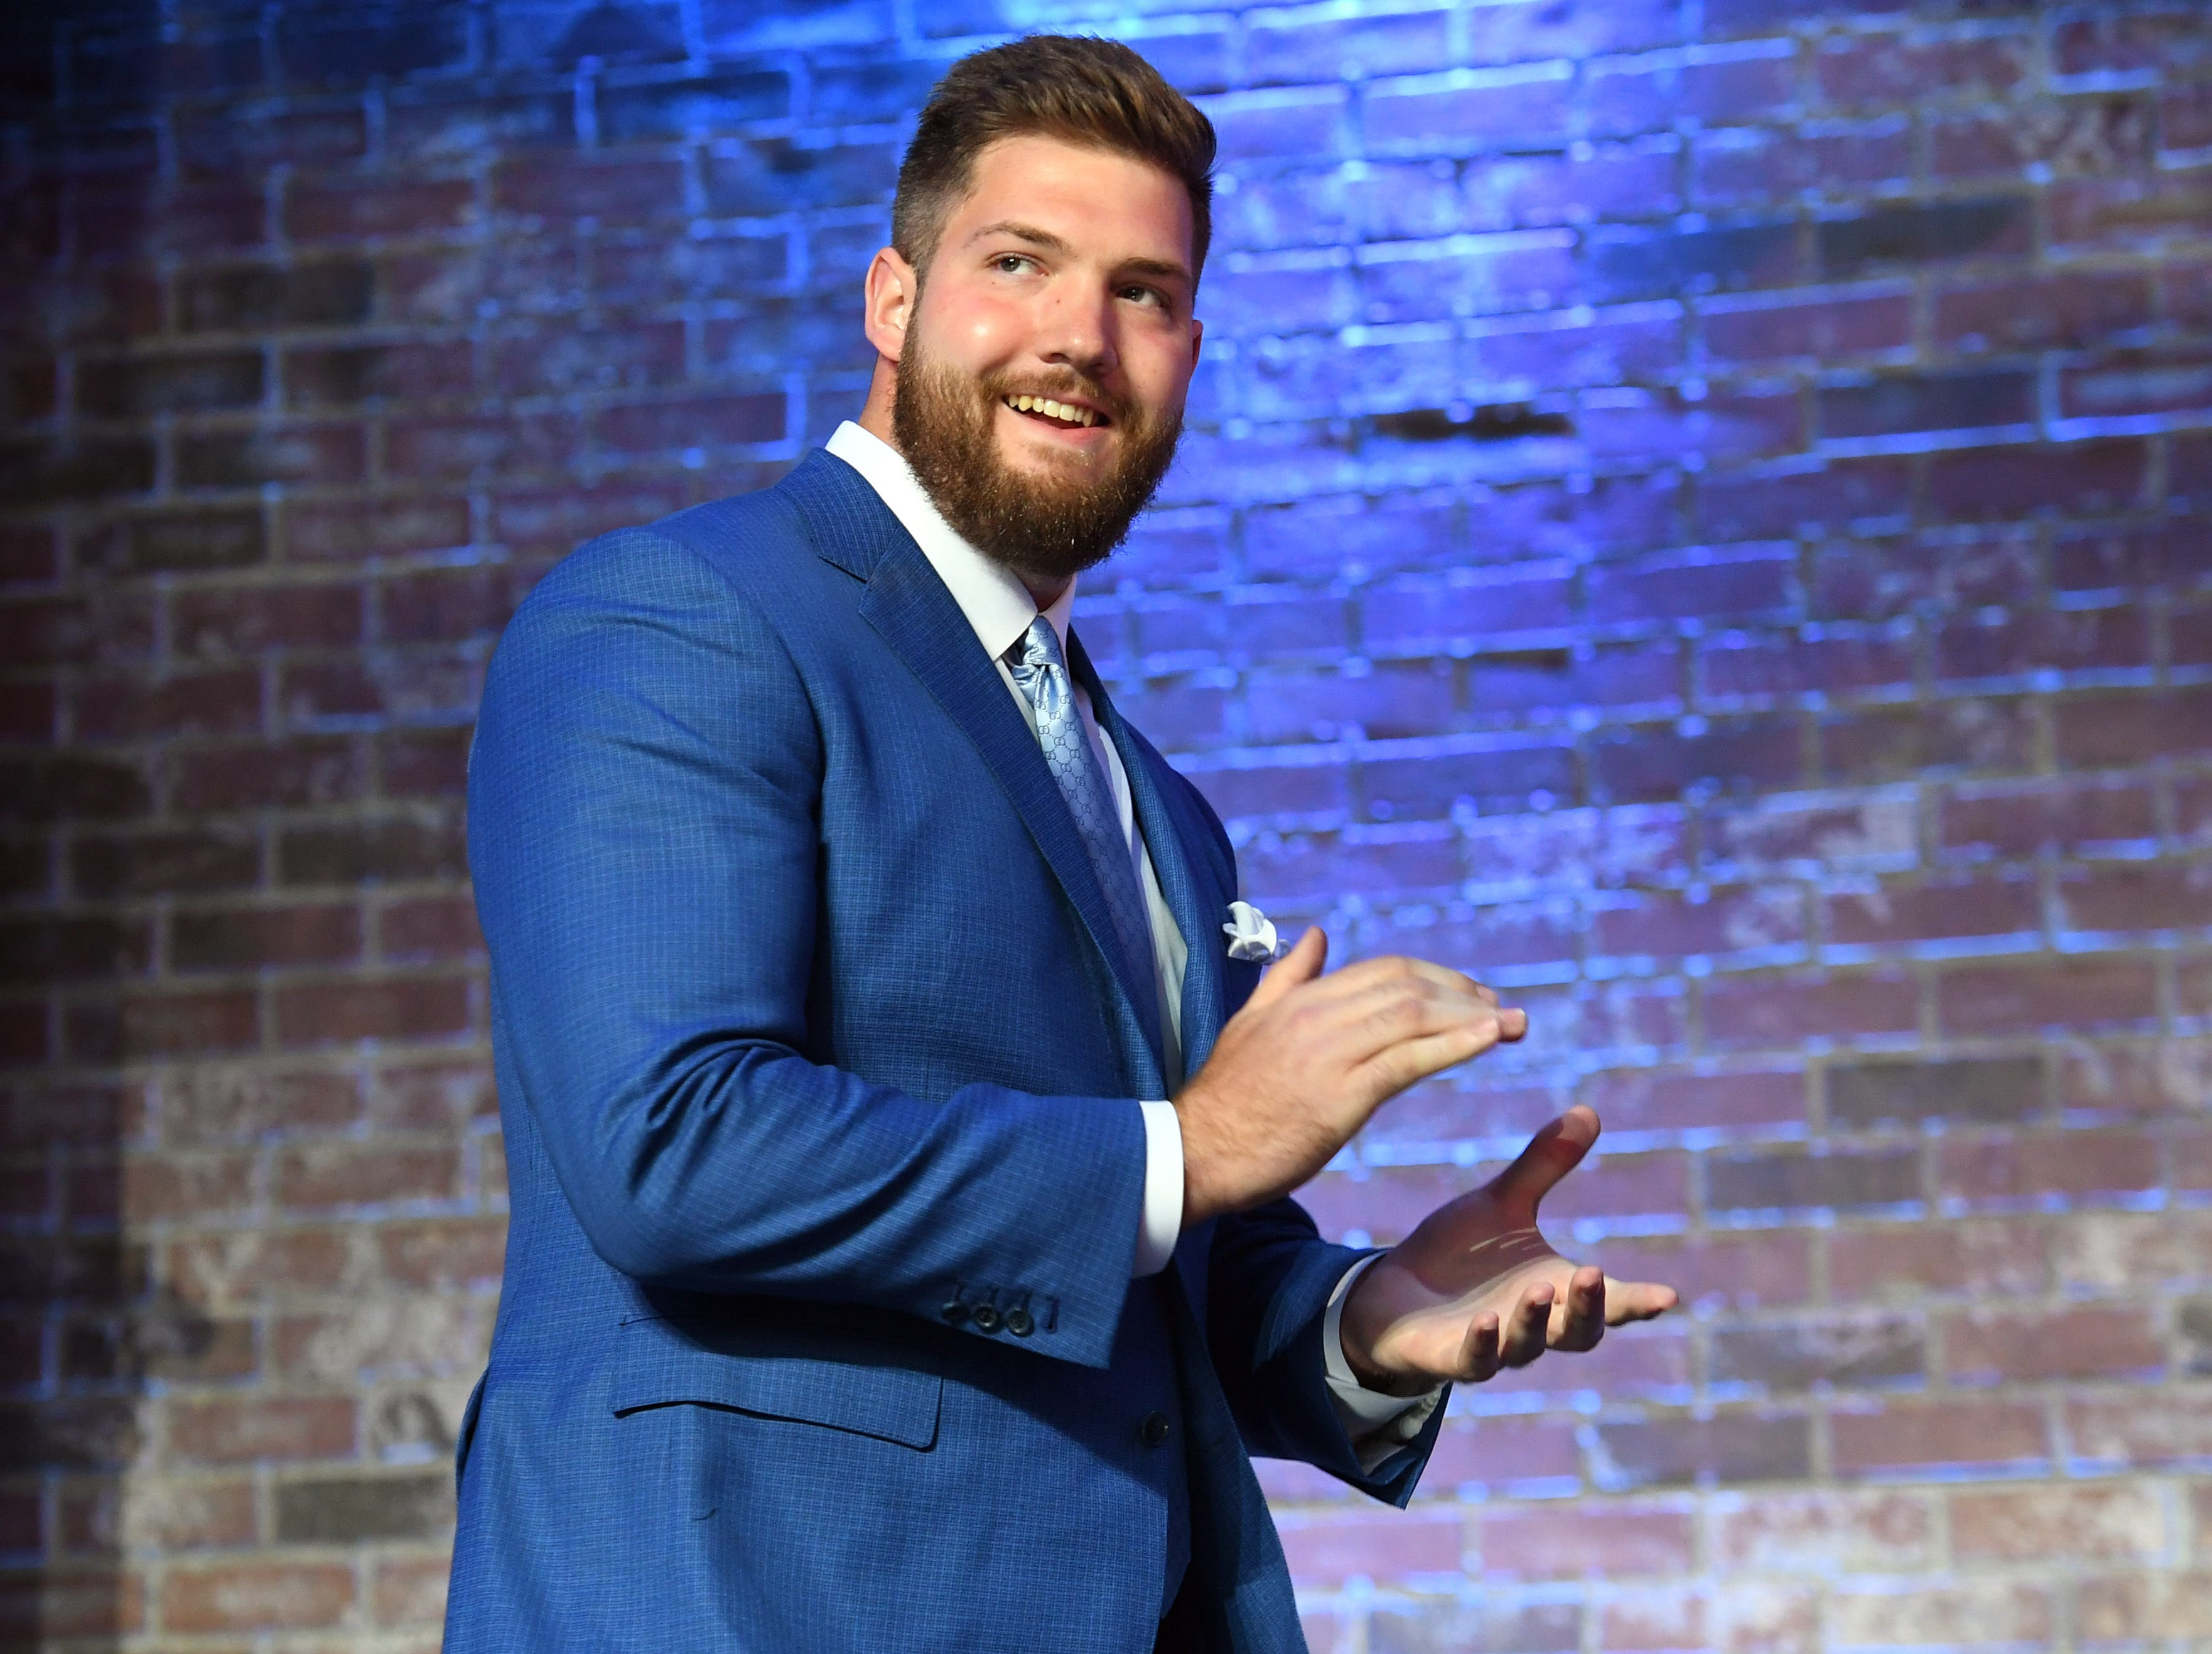 Apr 25, 2019; Nashville, TN, USA; Jonah Williams (Alabama) takes the stage prior to the first round of the 2019 NFL Draft in Downtown Nashville. Mandatory Credit: Christopher Hanewinckel-USA TODAY Sports